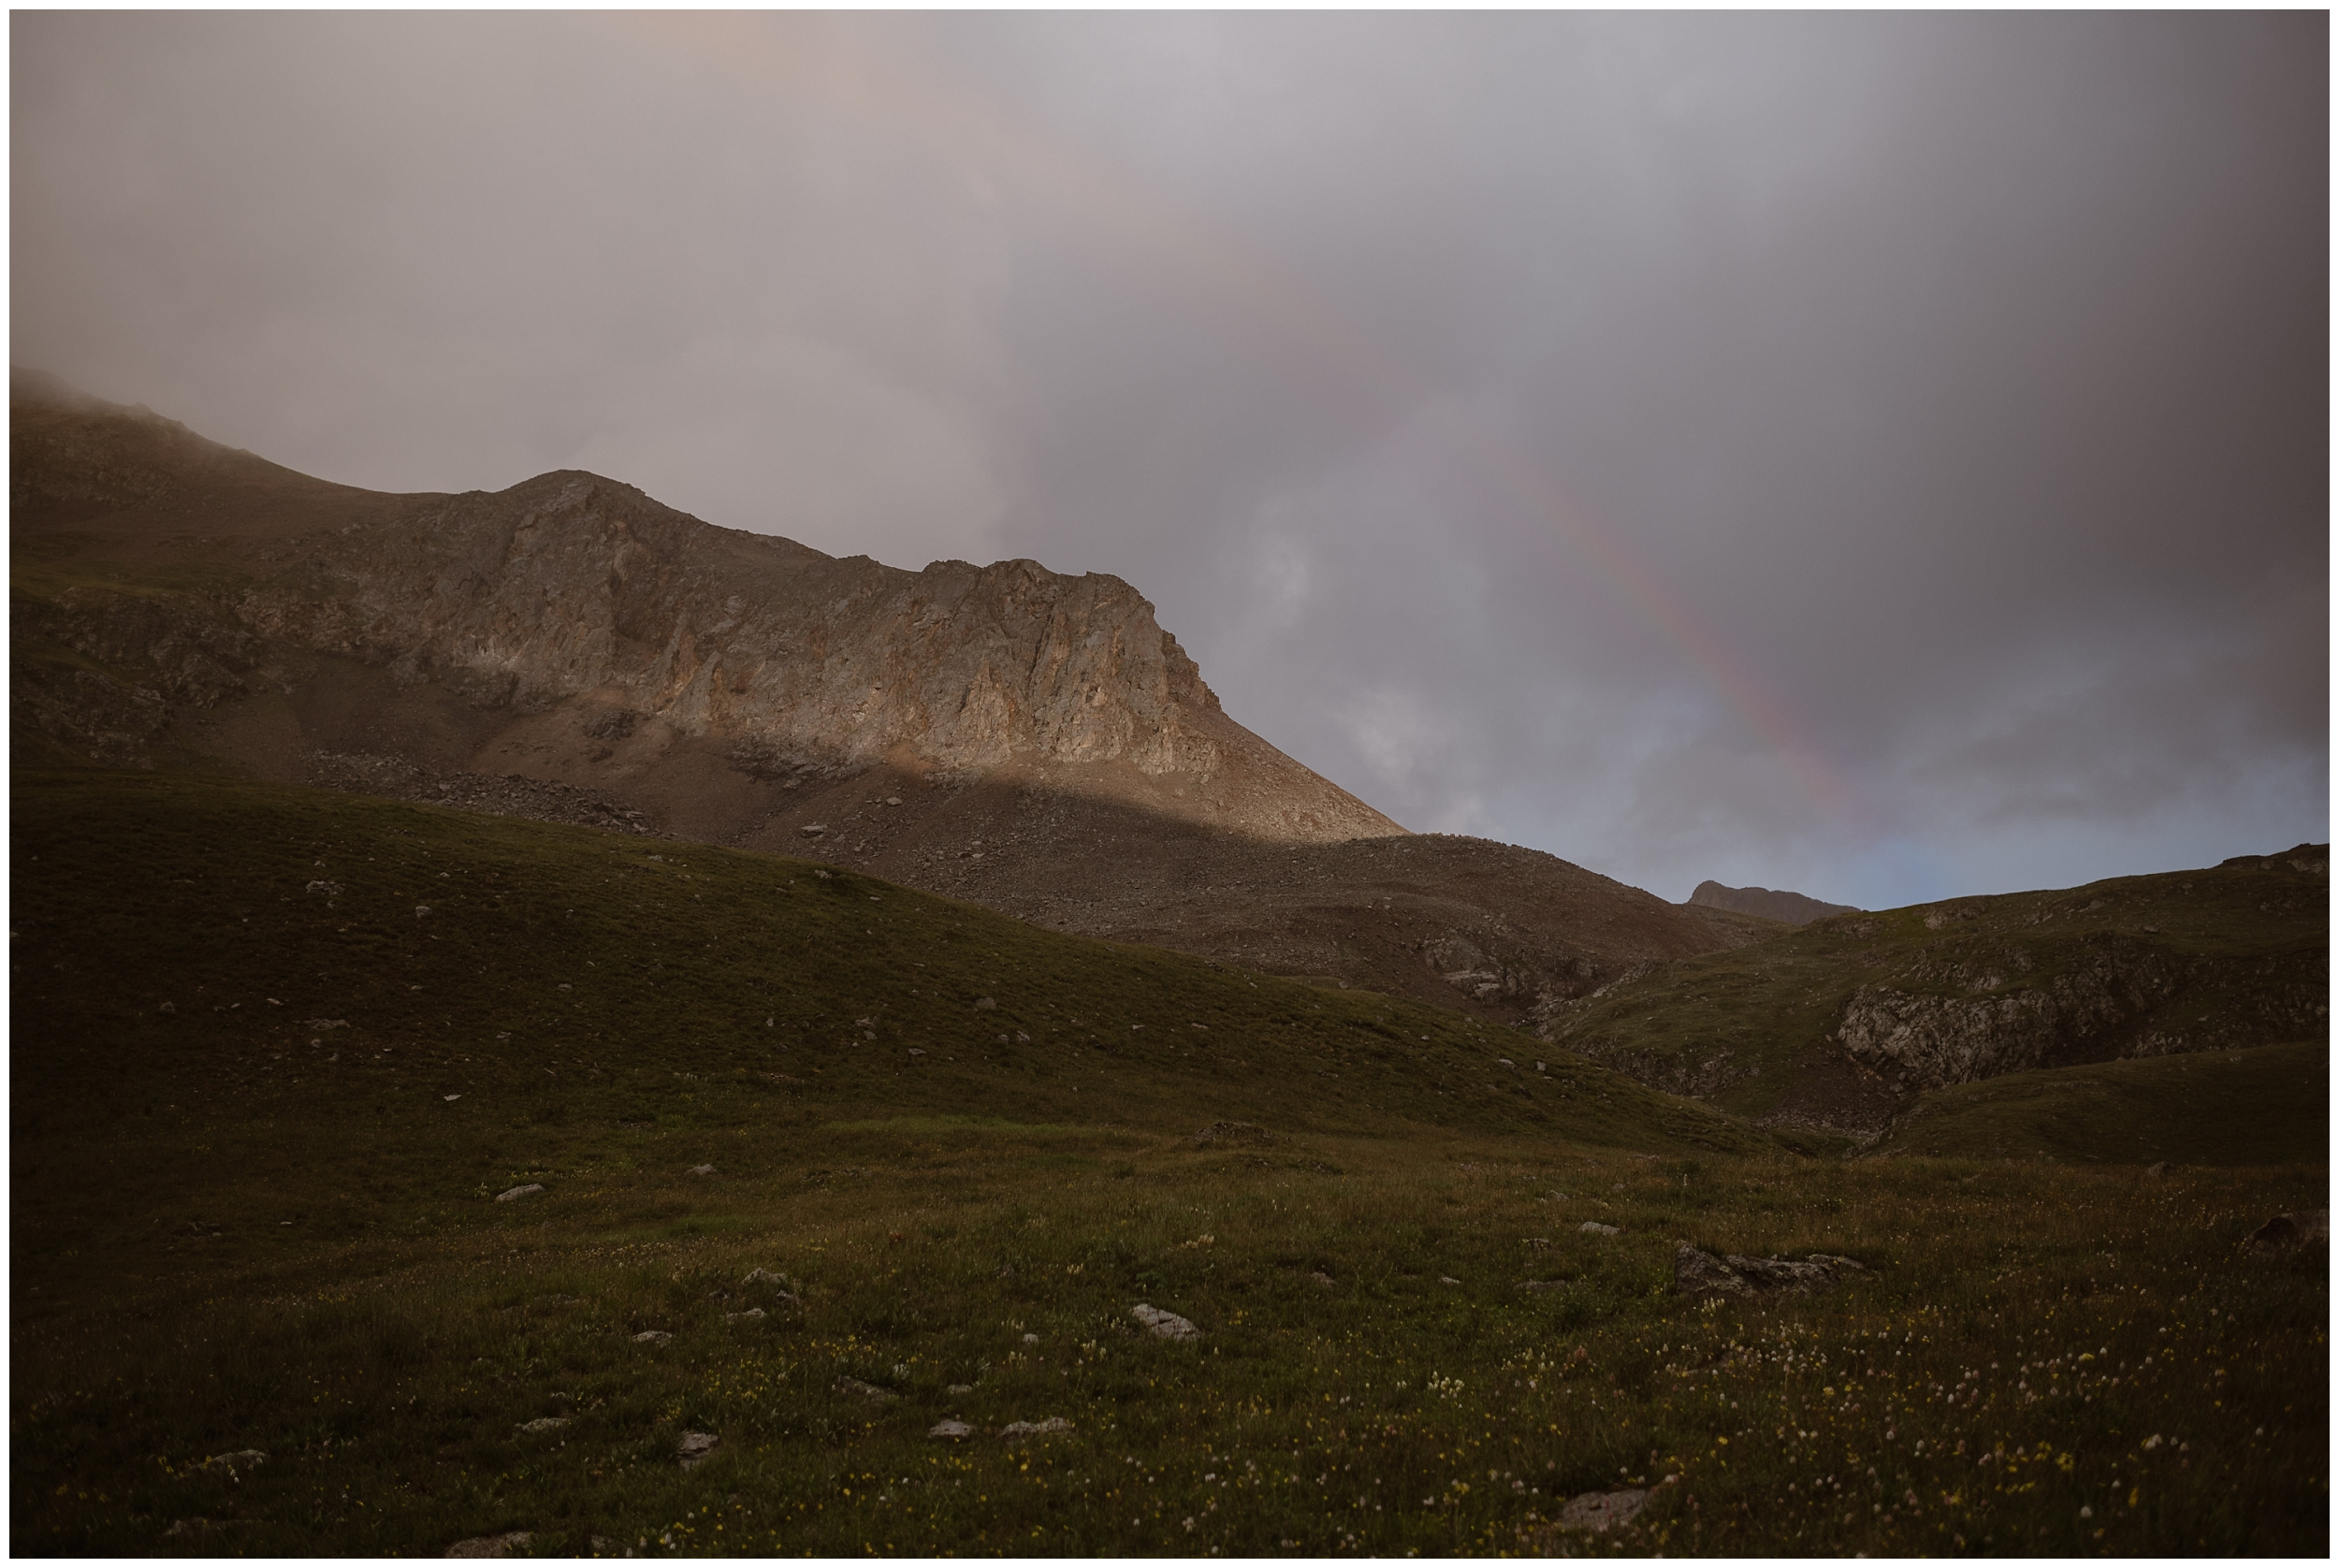 A rainbow crests over the top of a granite mountain, a shadow cast on the bottom by the green meadow beneath it. Katie and Logan, the bride and groom, waited in the adventure Jeep while the sudden storm passed. As soon as it was over, they climbed out to continue their elopement ceremony.